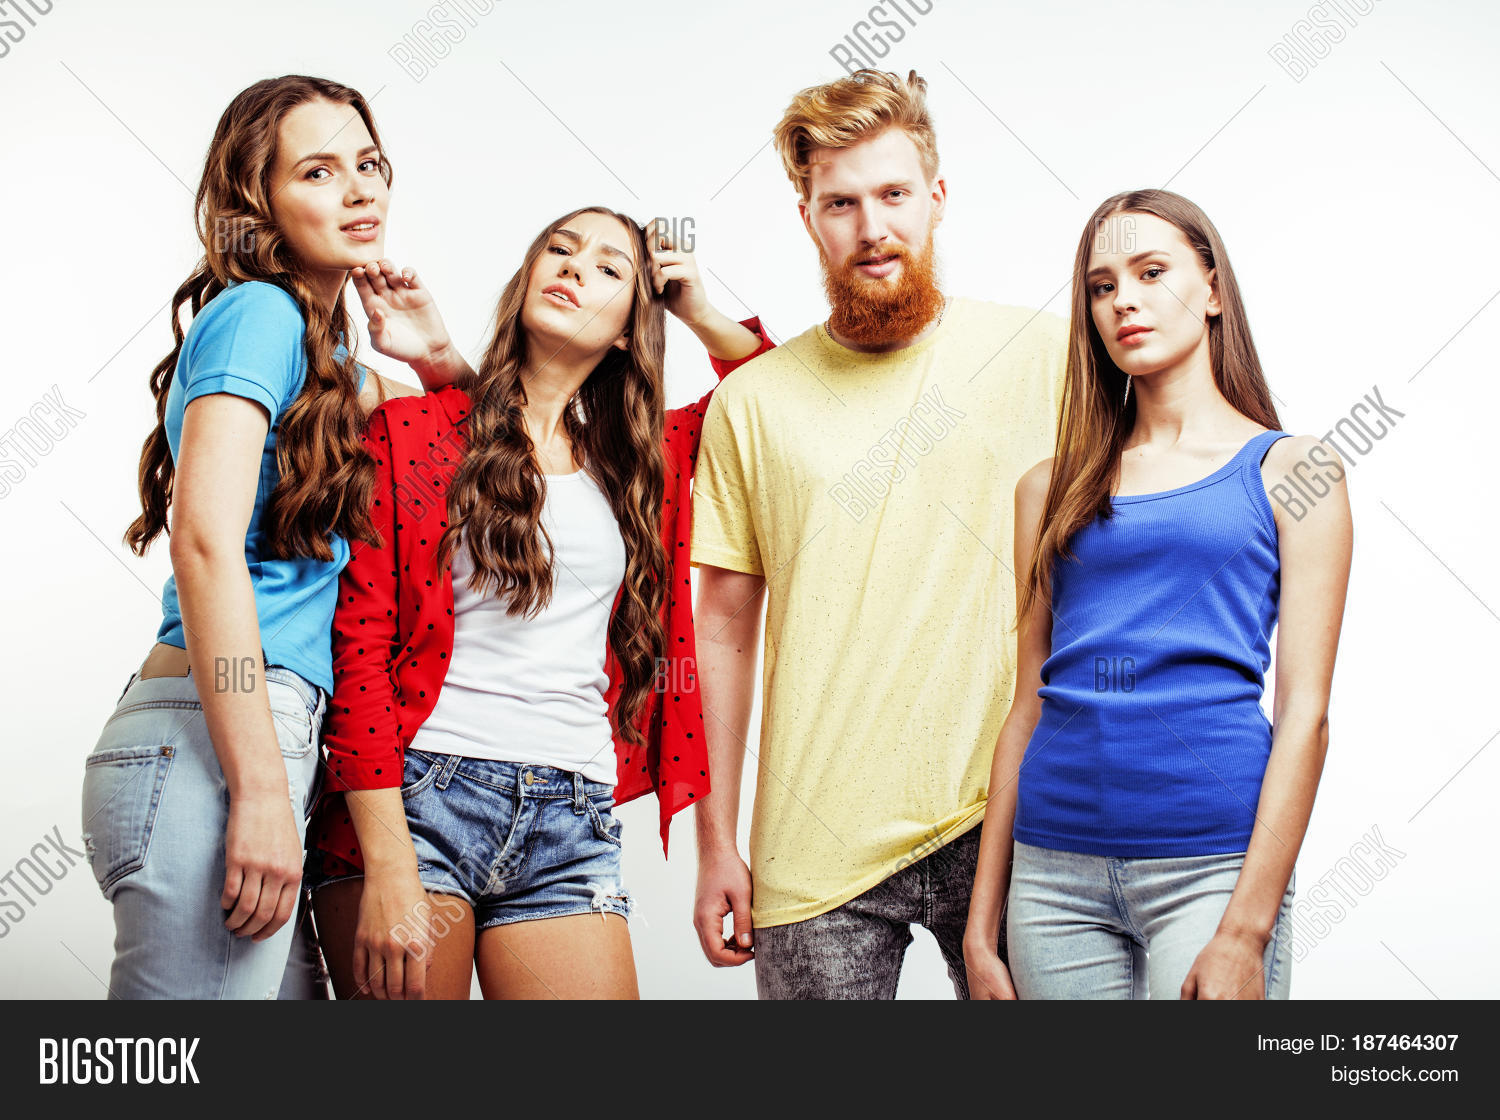 Image Et Photo De Company Hipster Guys Bearded Bigstock